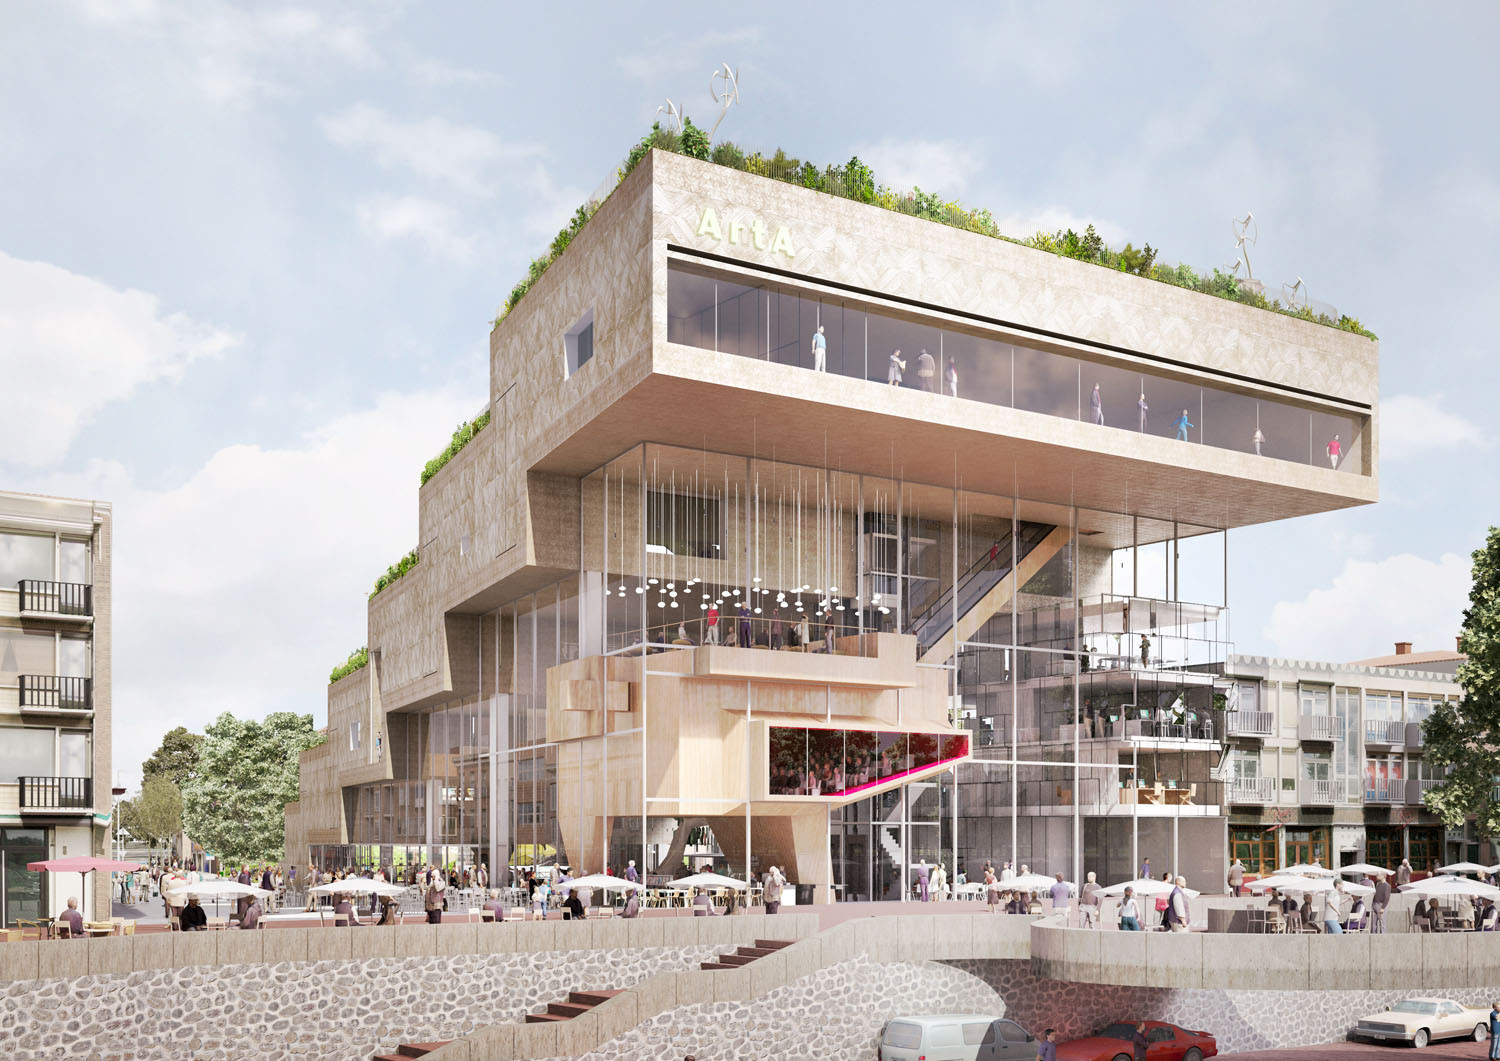 NL Architects Shortlisted to Design ArtA Cultural Center in Arnhem , Rhine View. Image Courtesy of NL Architects